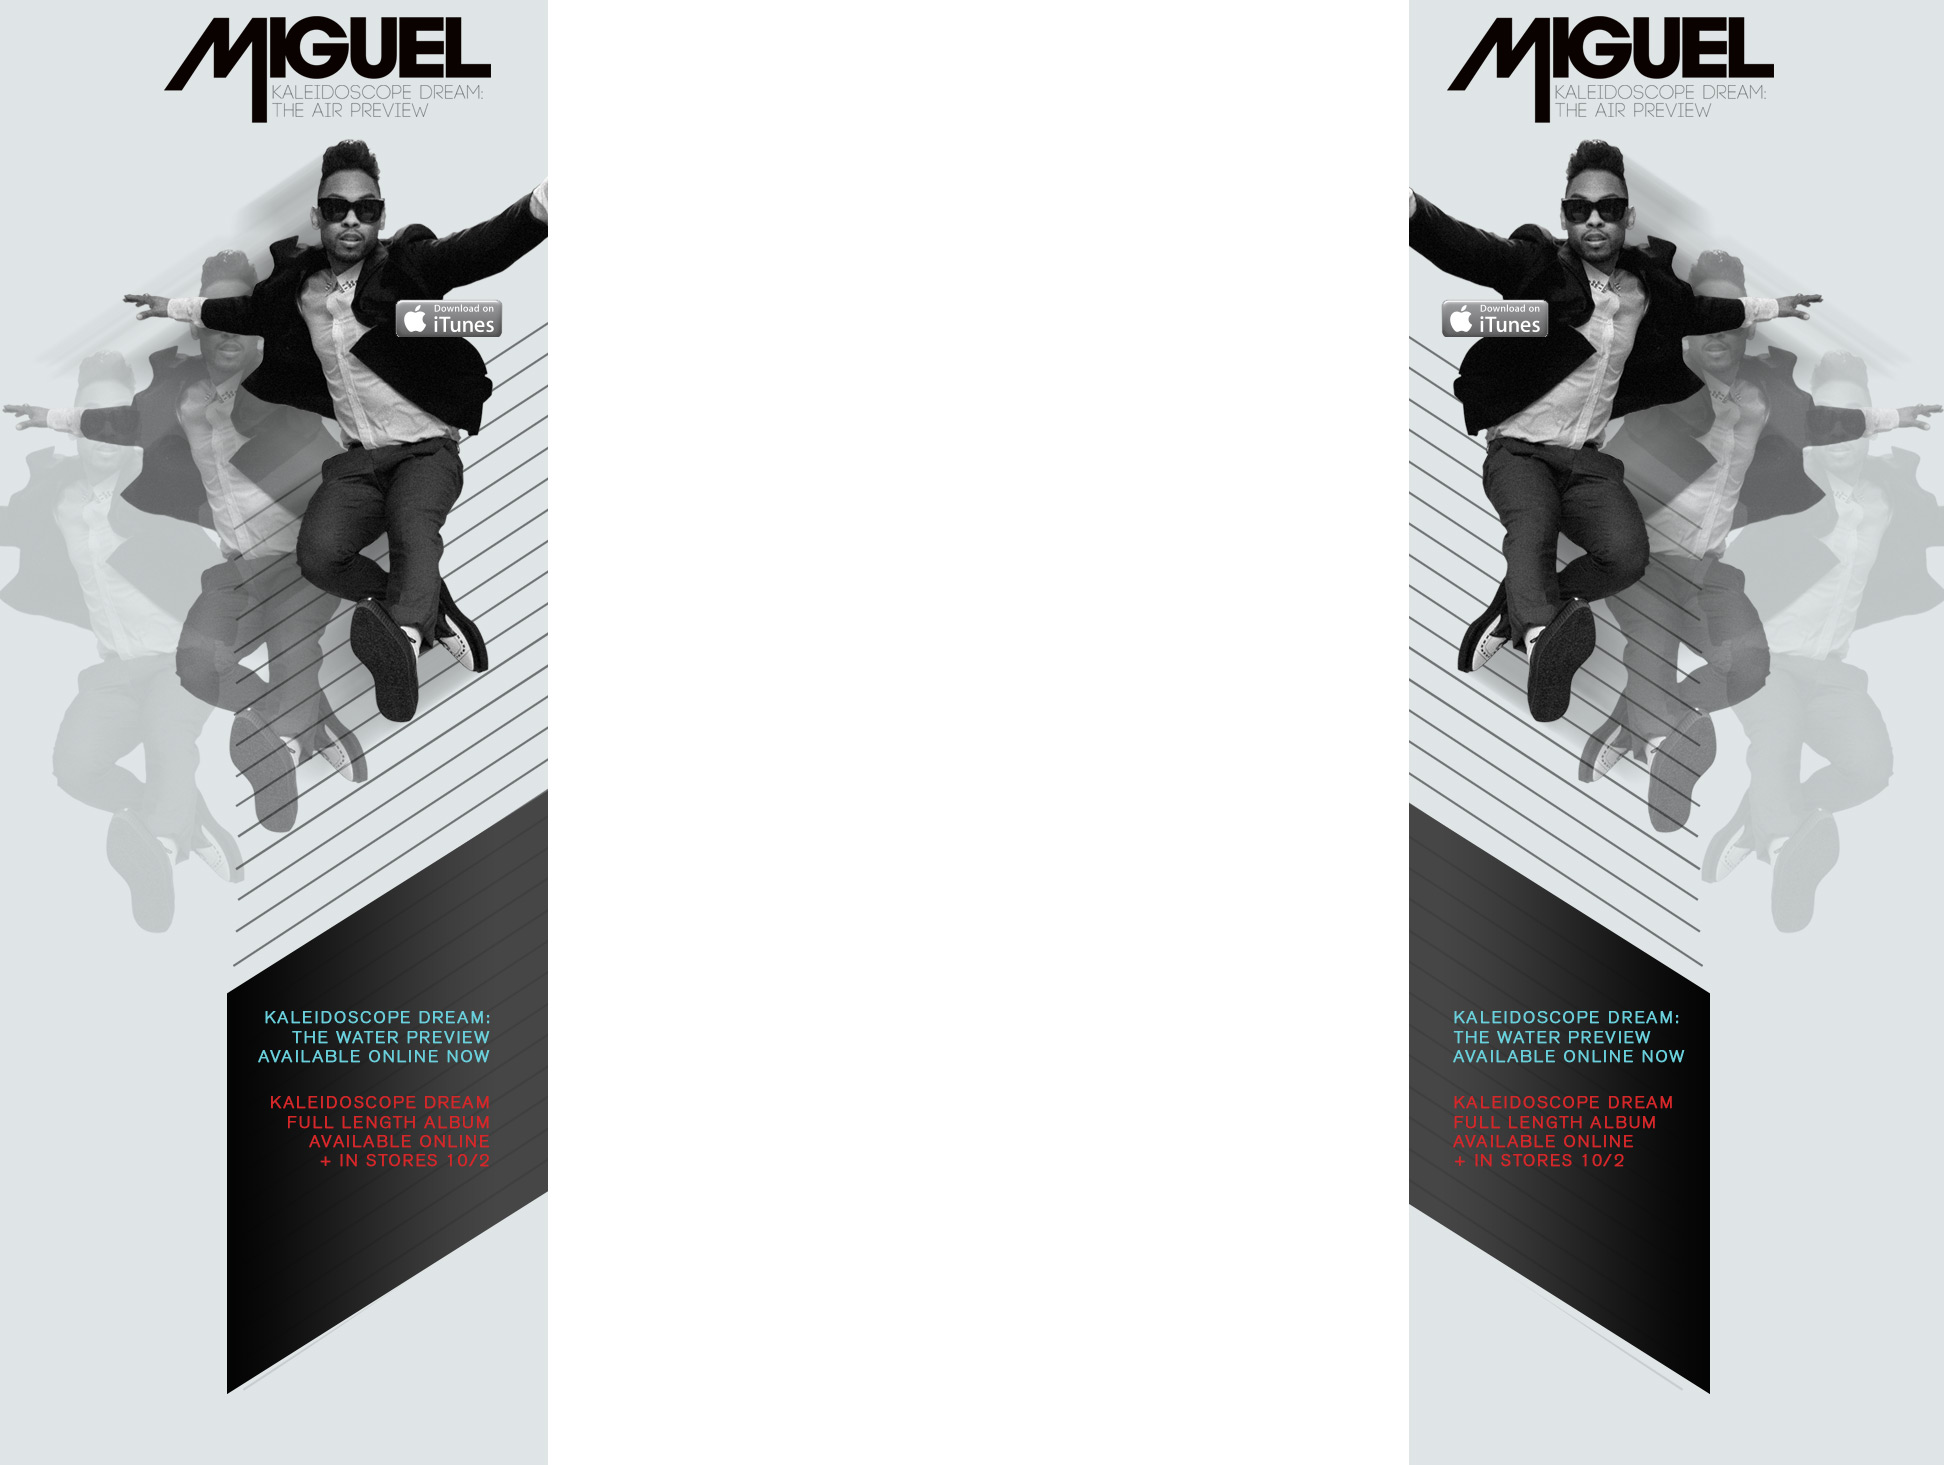 miguel_takeover_ready3.jpg